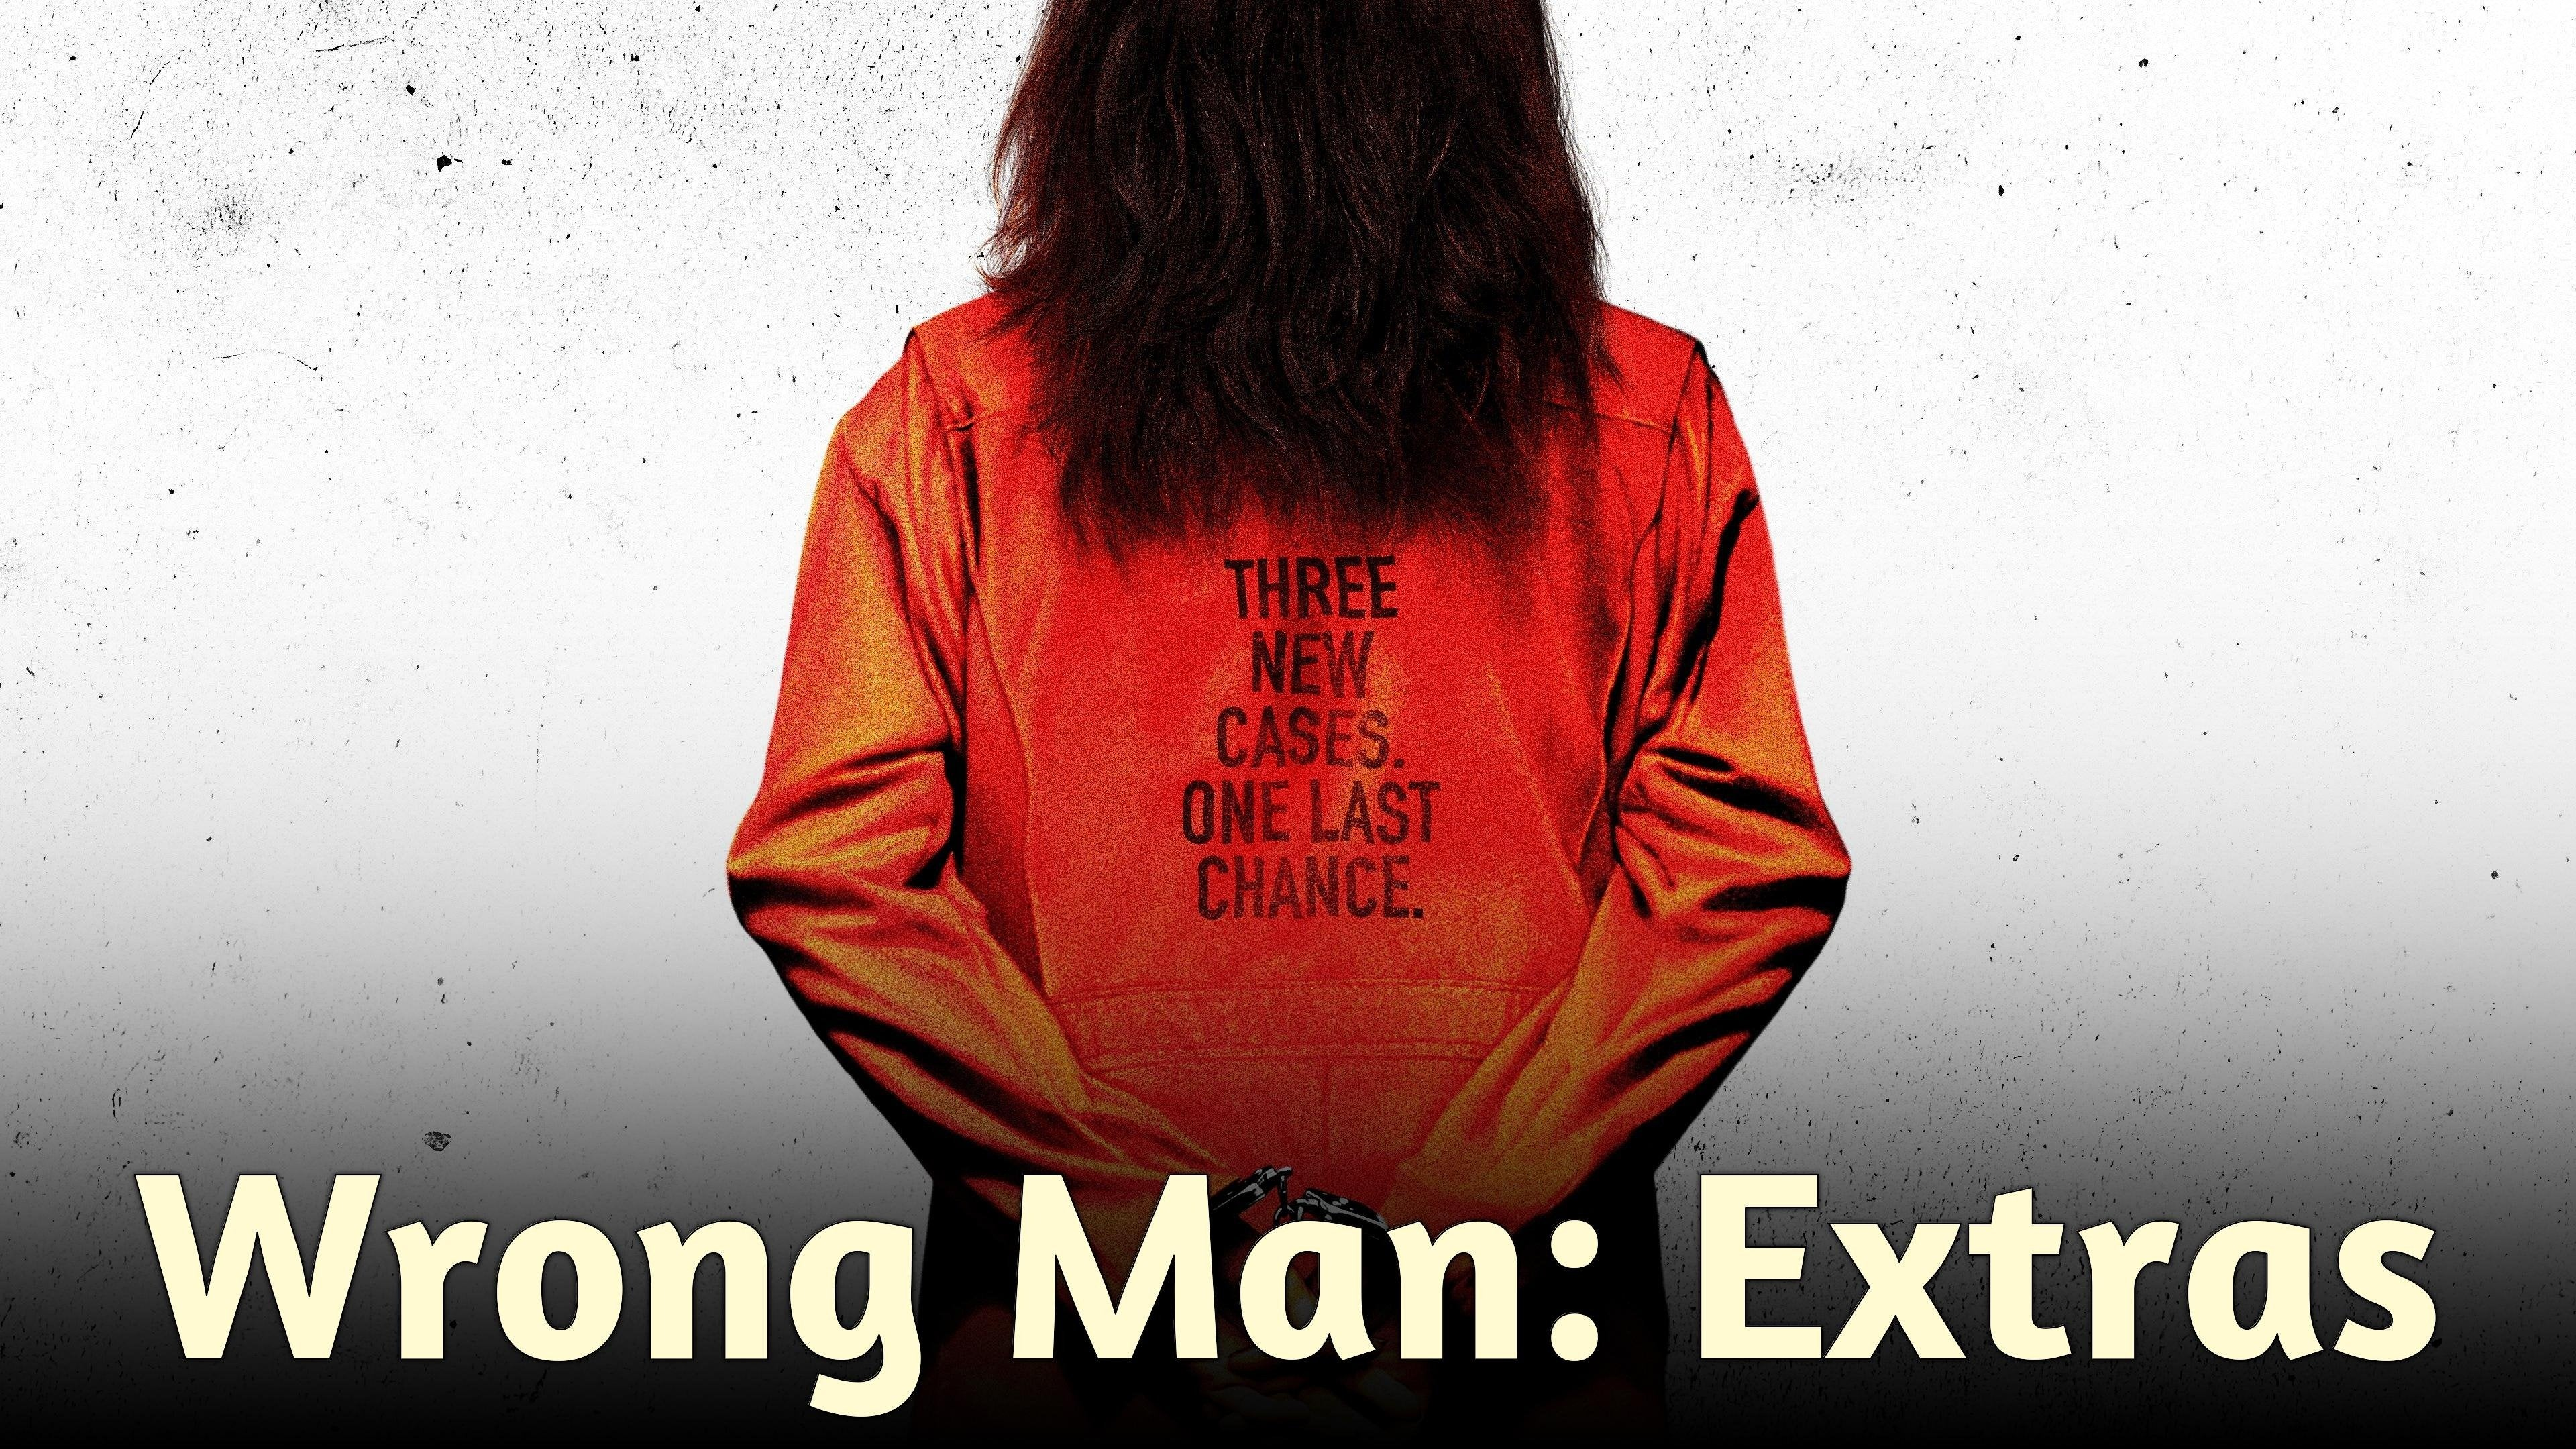 Wrong Man: Extras